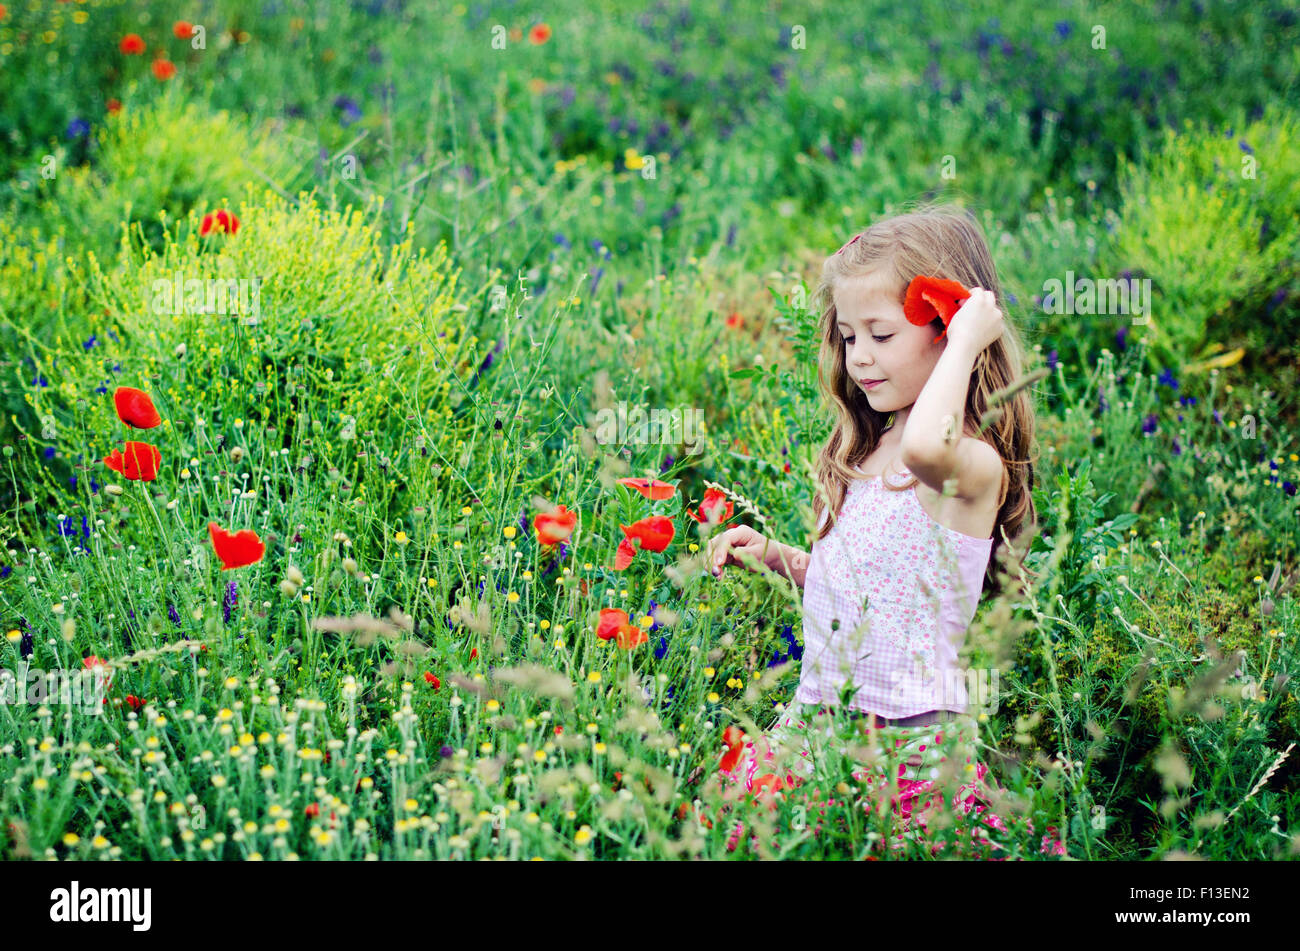 Girl walking through a poppy field - Stock Image